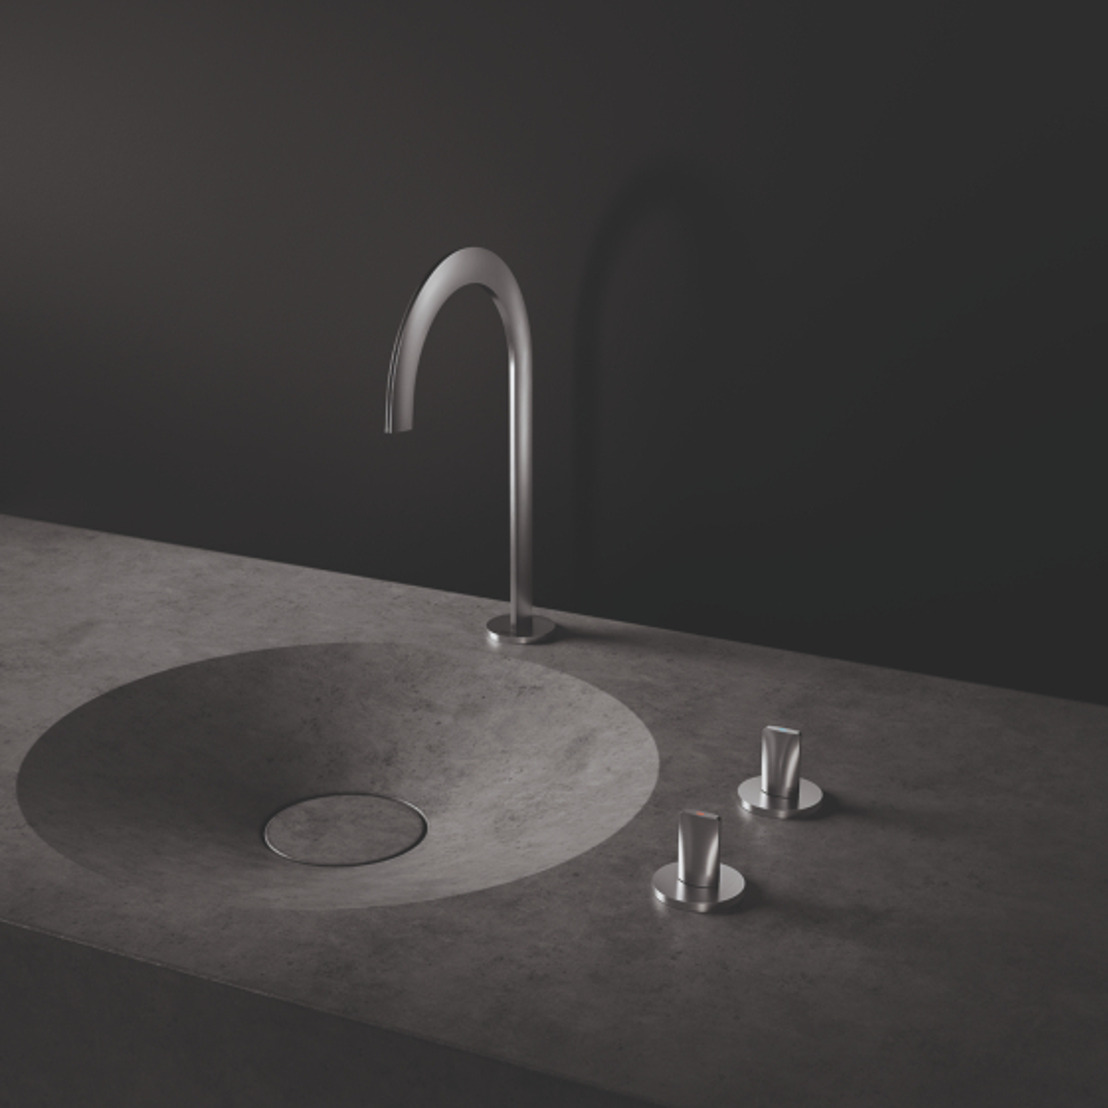 GROHE presenteert de eerste 3D-metaalgeprinte kranen – Shaping the future of water